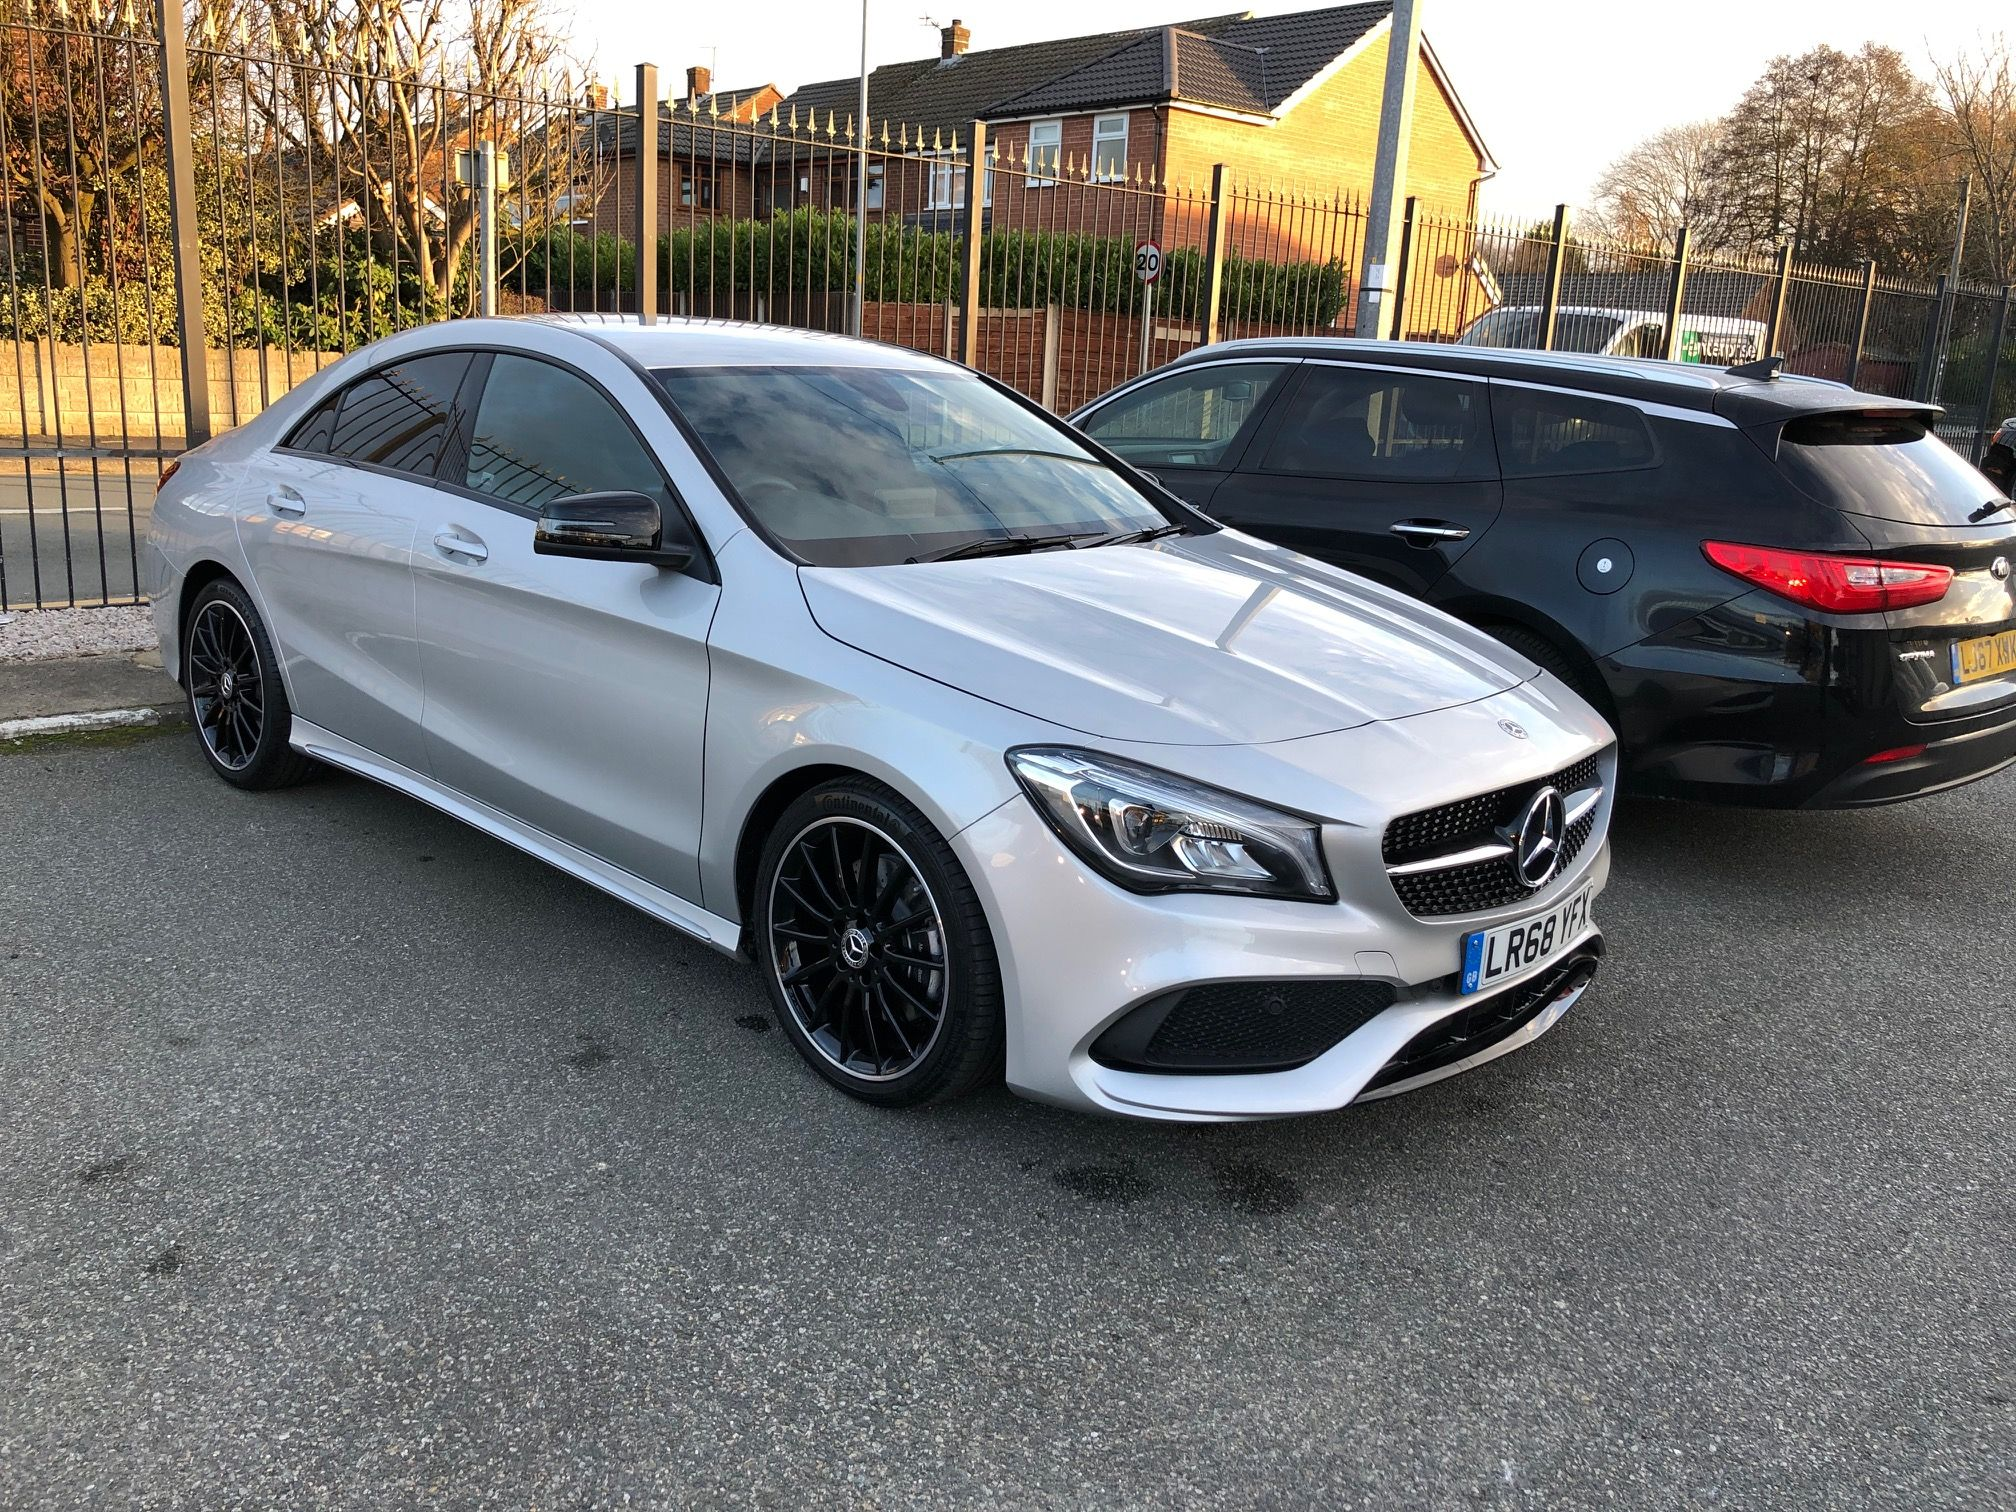 The Mercedes Benz Cla Class Diesel Coupe Cla 220d Amg Line Night